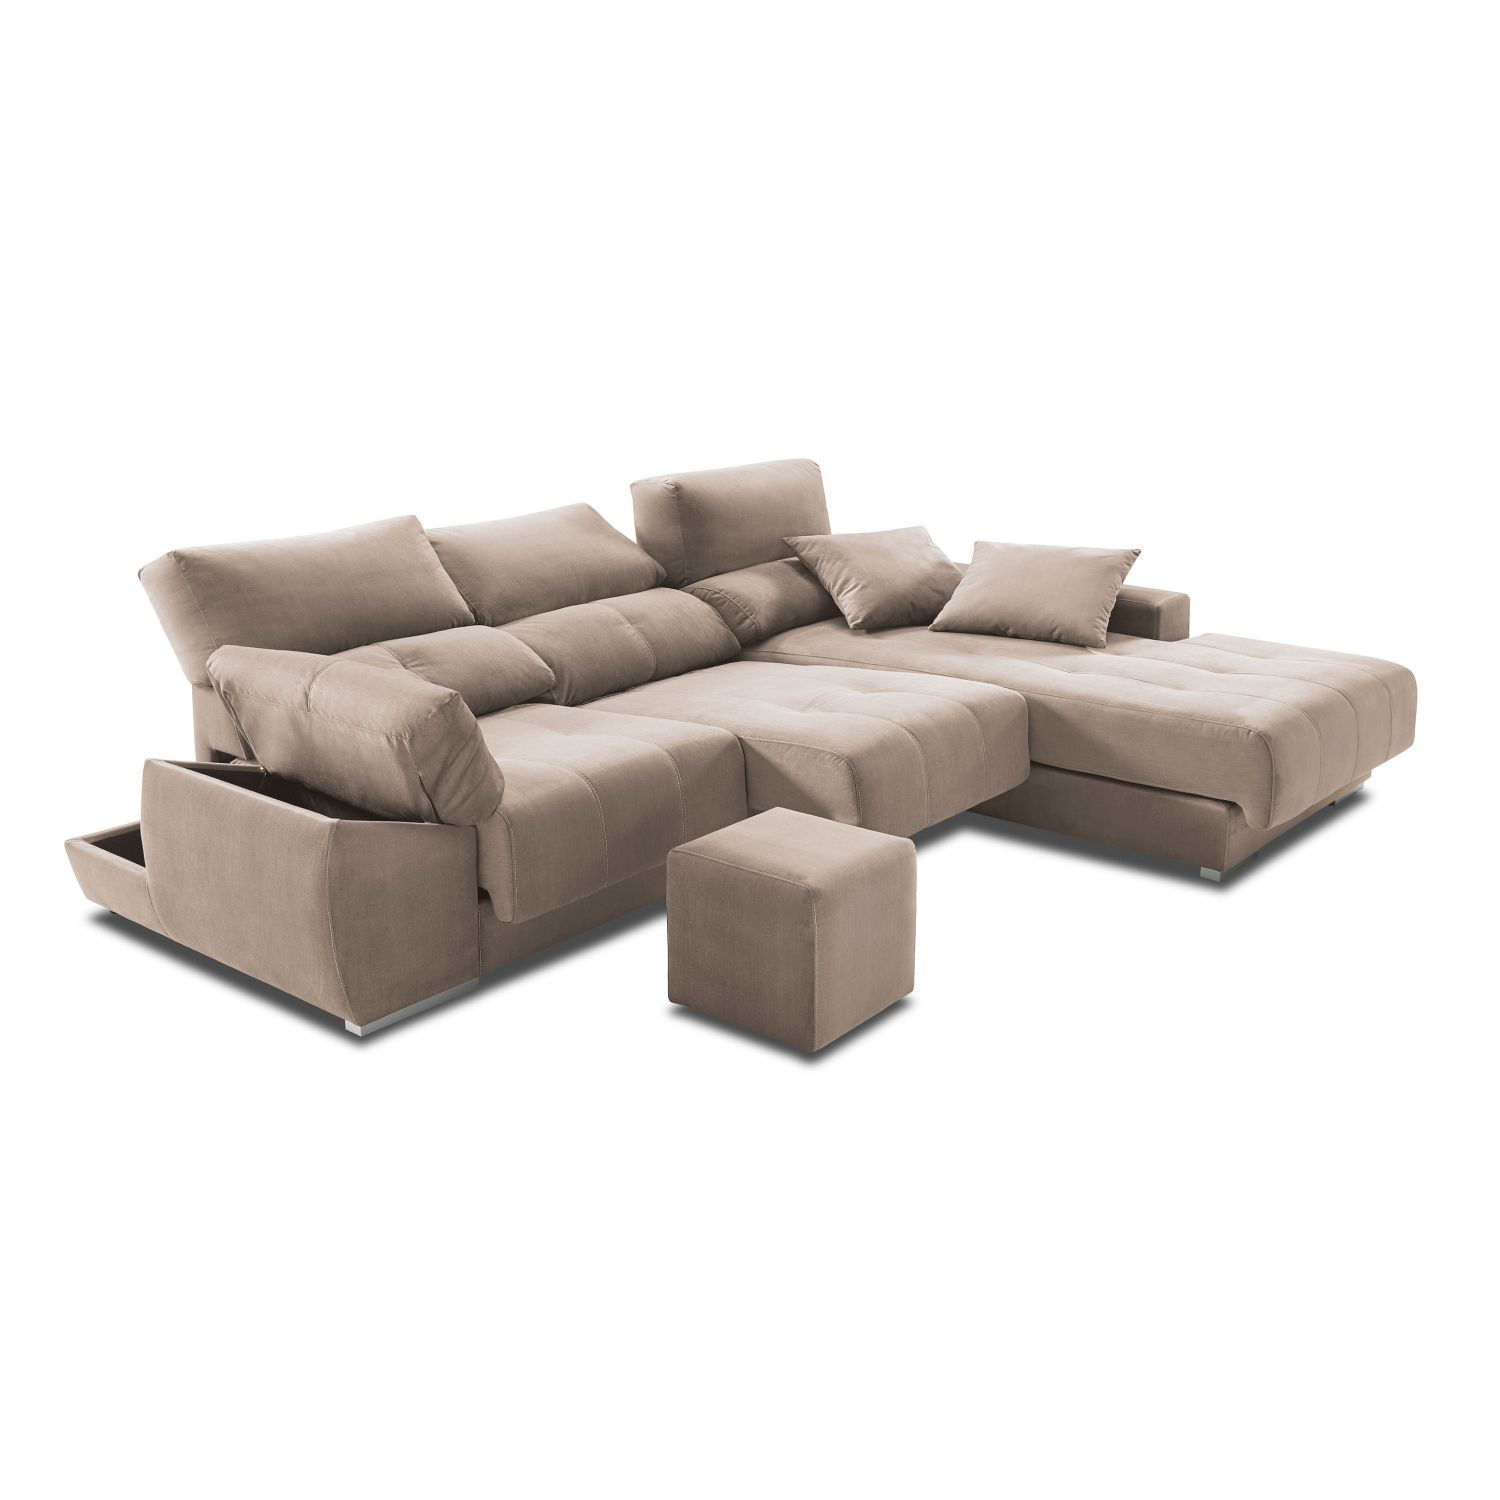 Chaise longue alta gama extensible reclinable con - Sofas alta gama ...